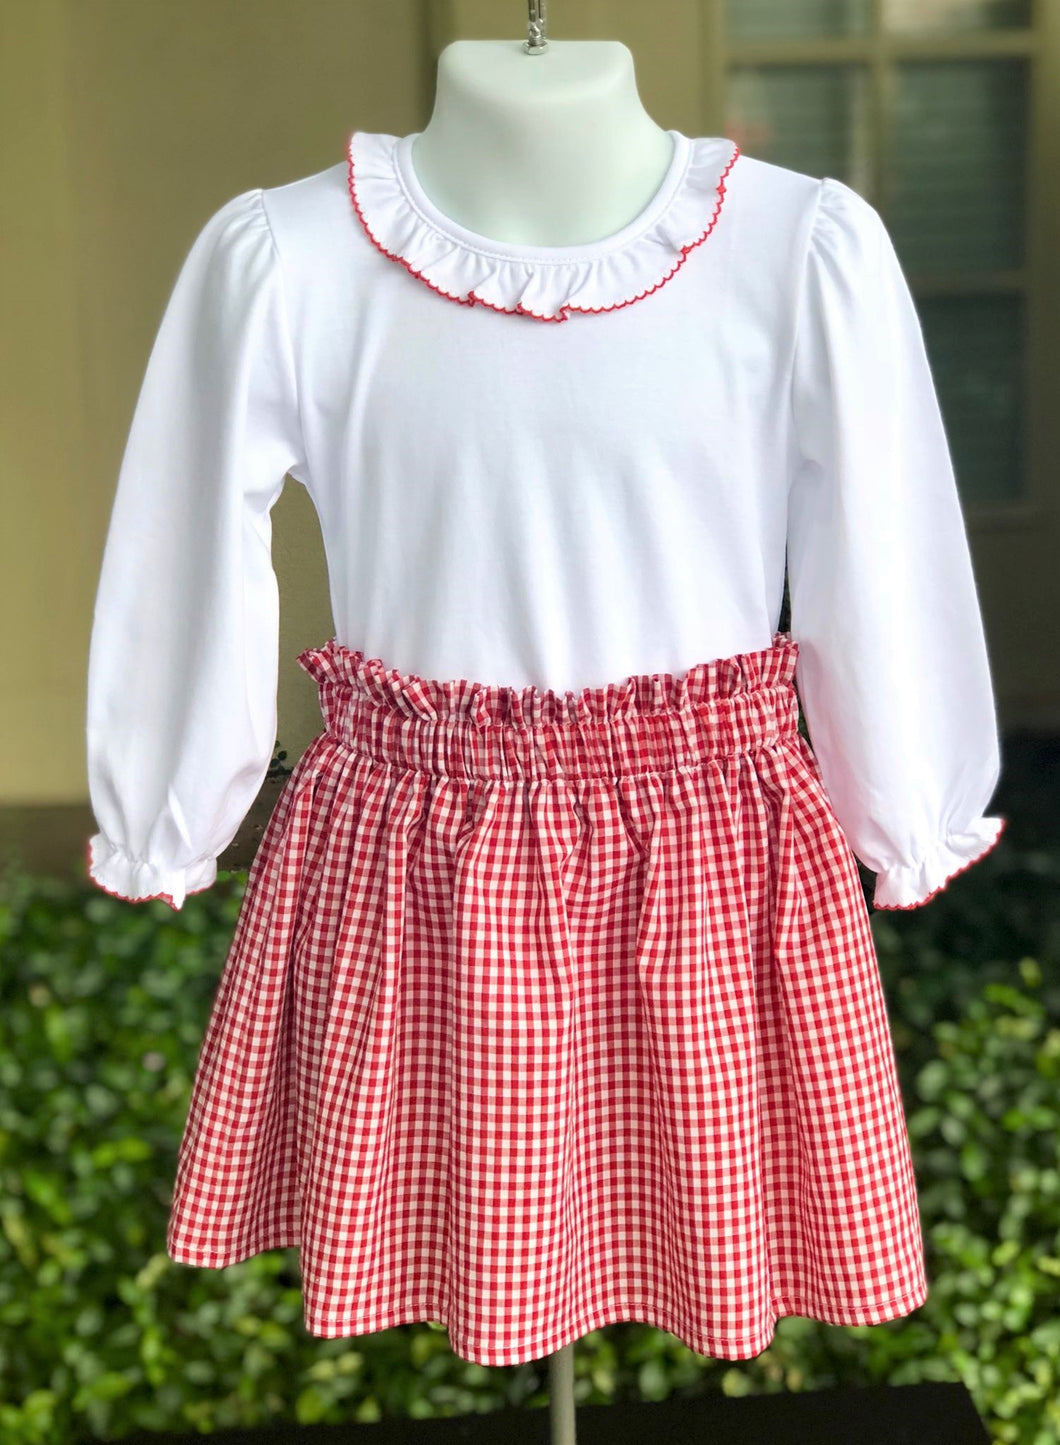 Ruffle collar blouse with red picot trim